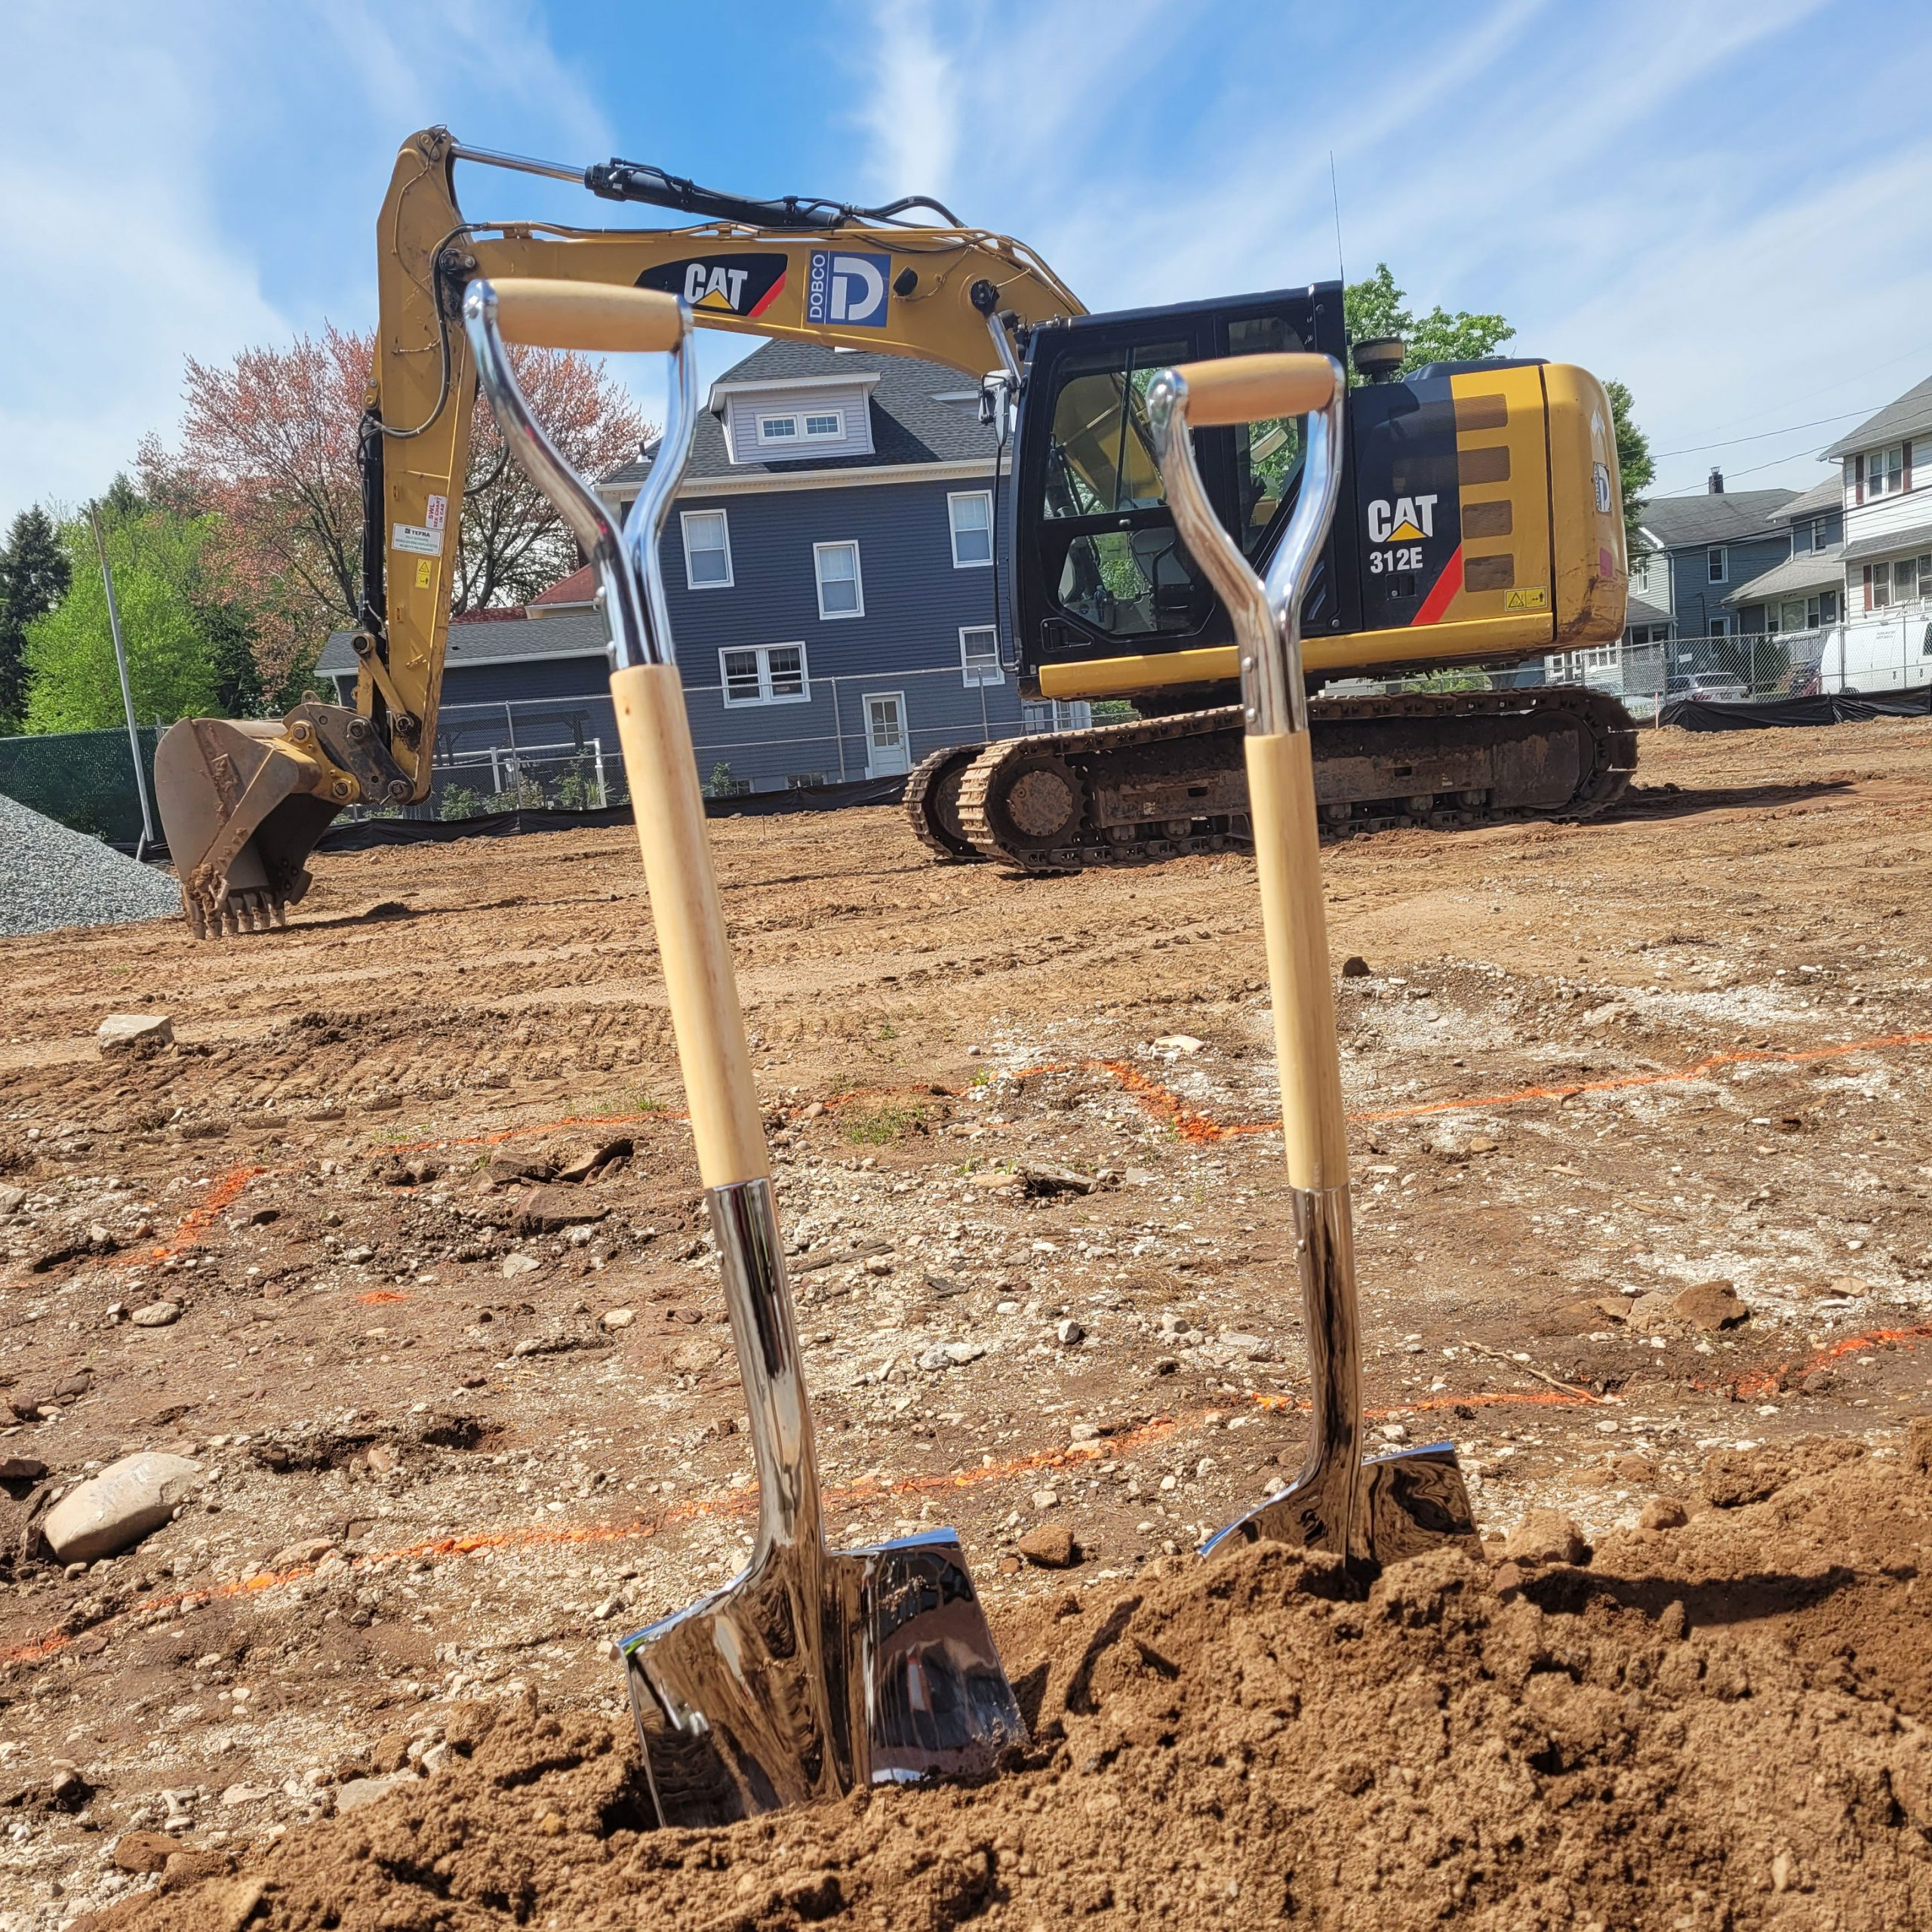 Groundbreaking at a new school shovels in dirt